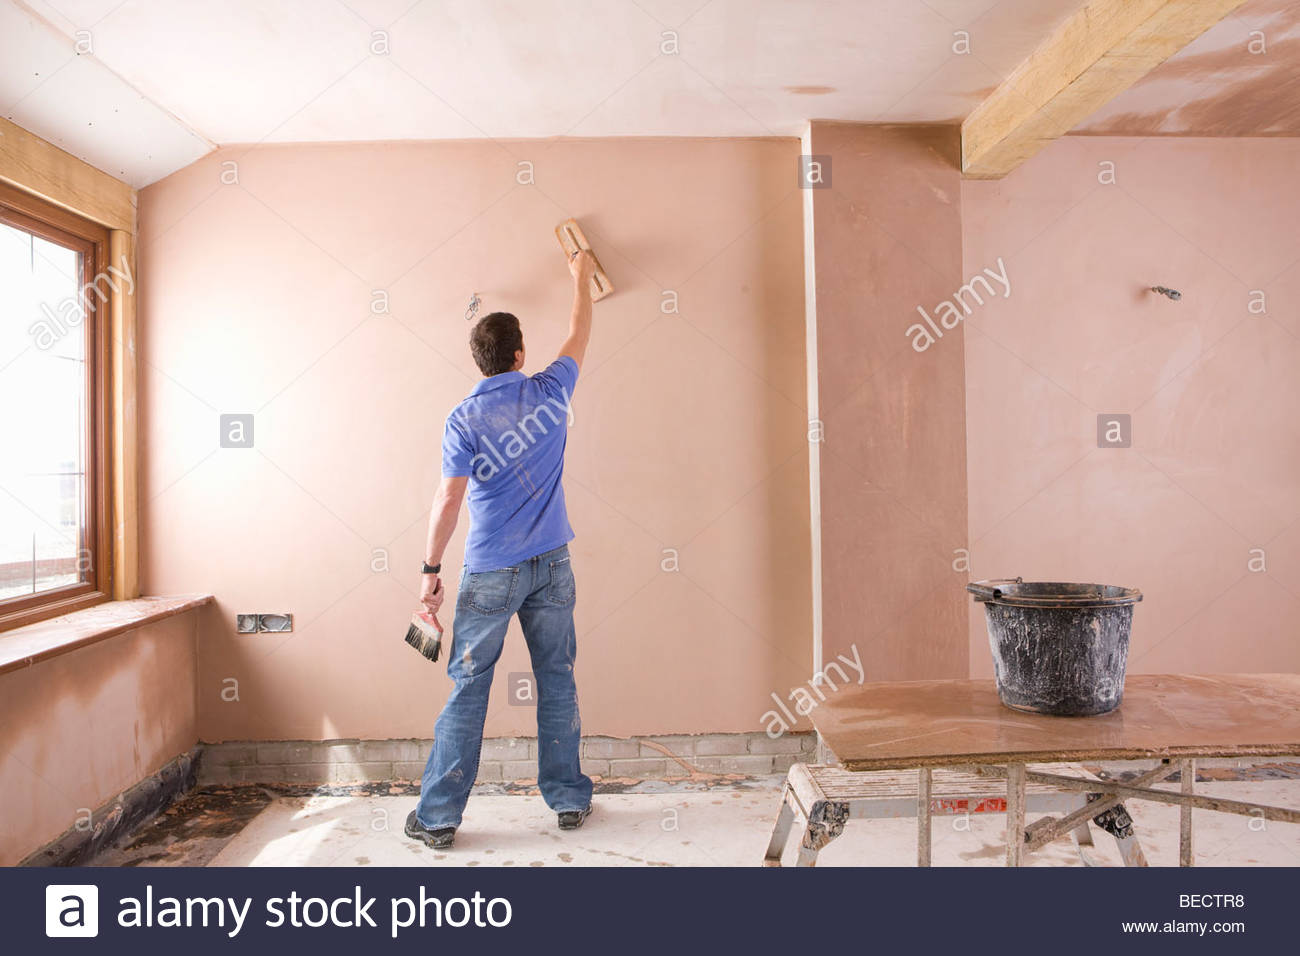 Man plastering wall in house under construction Stock Photo